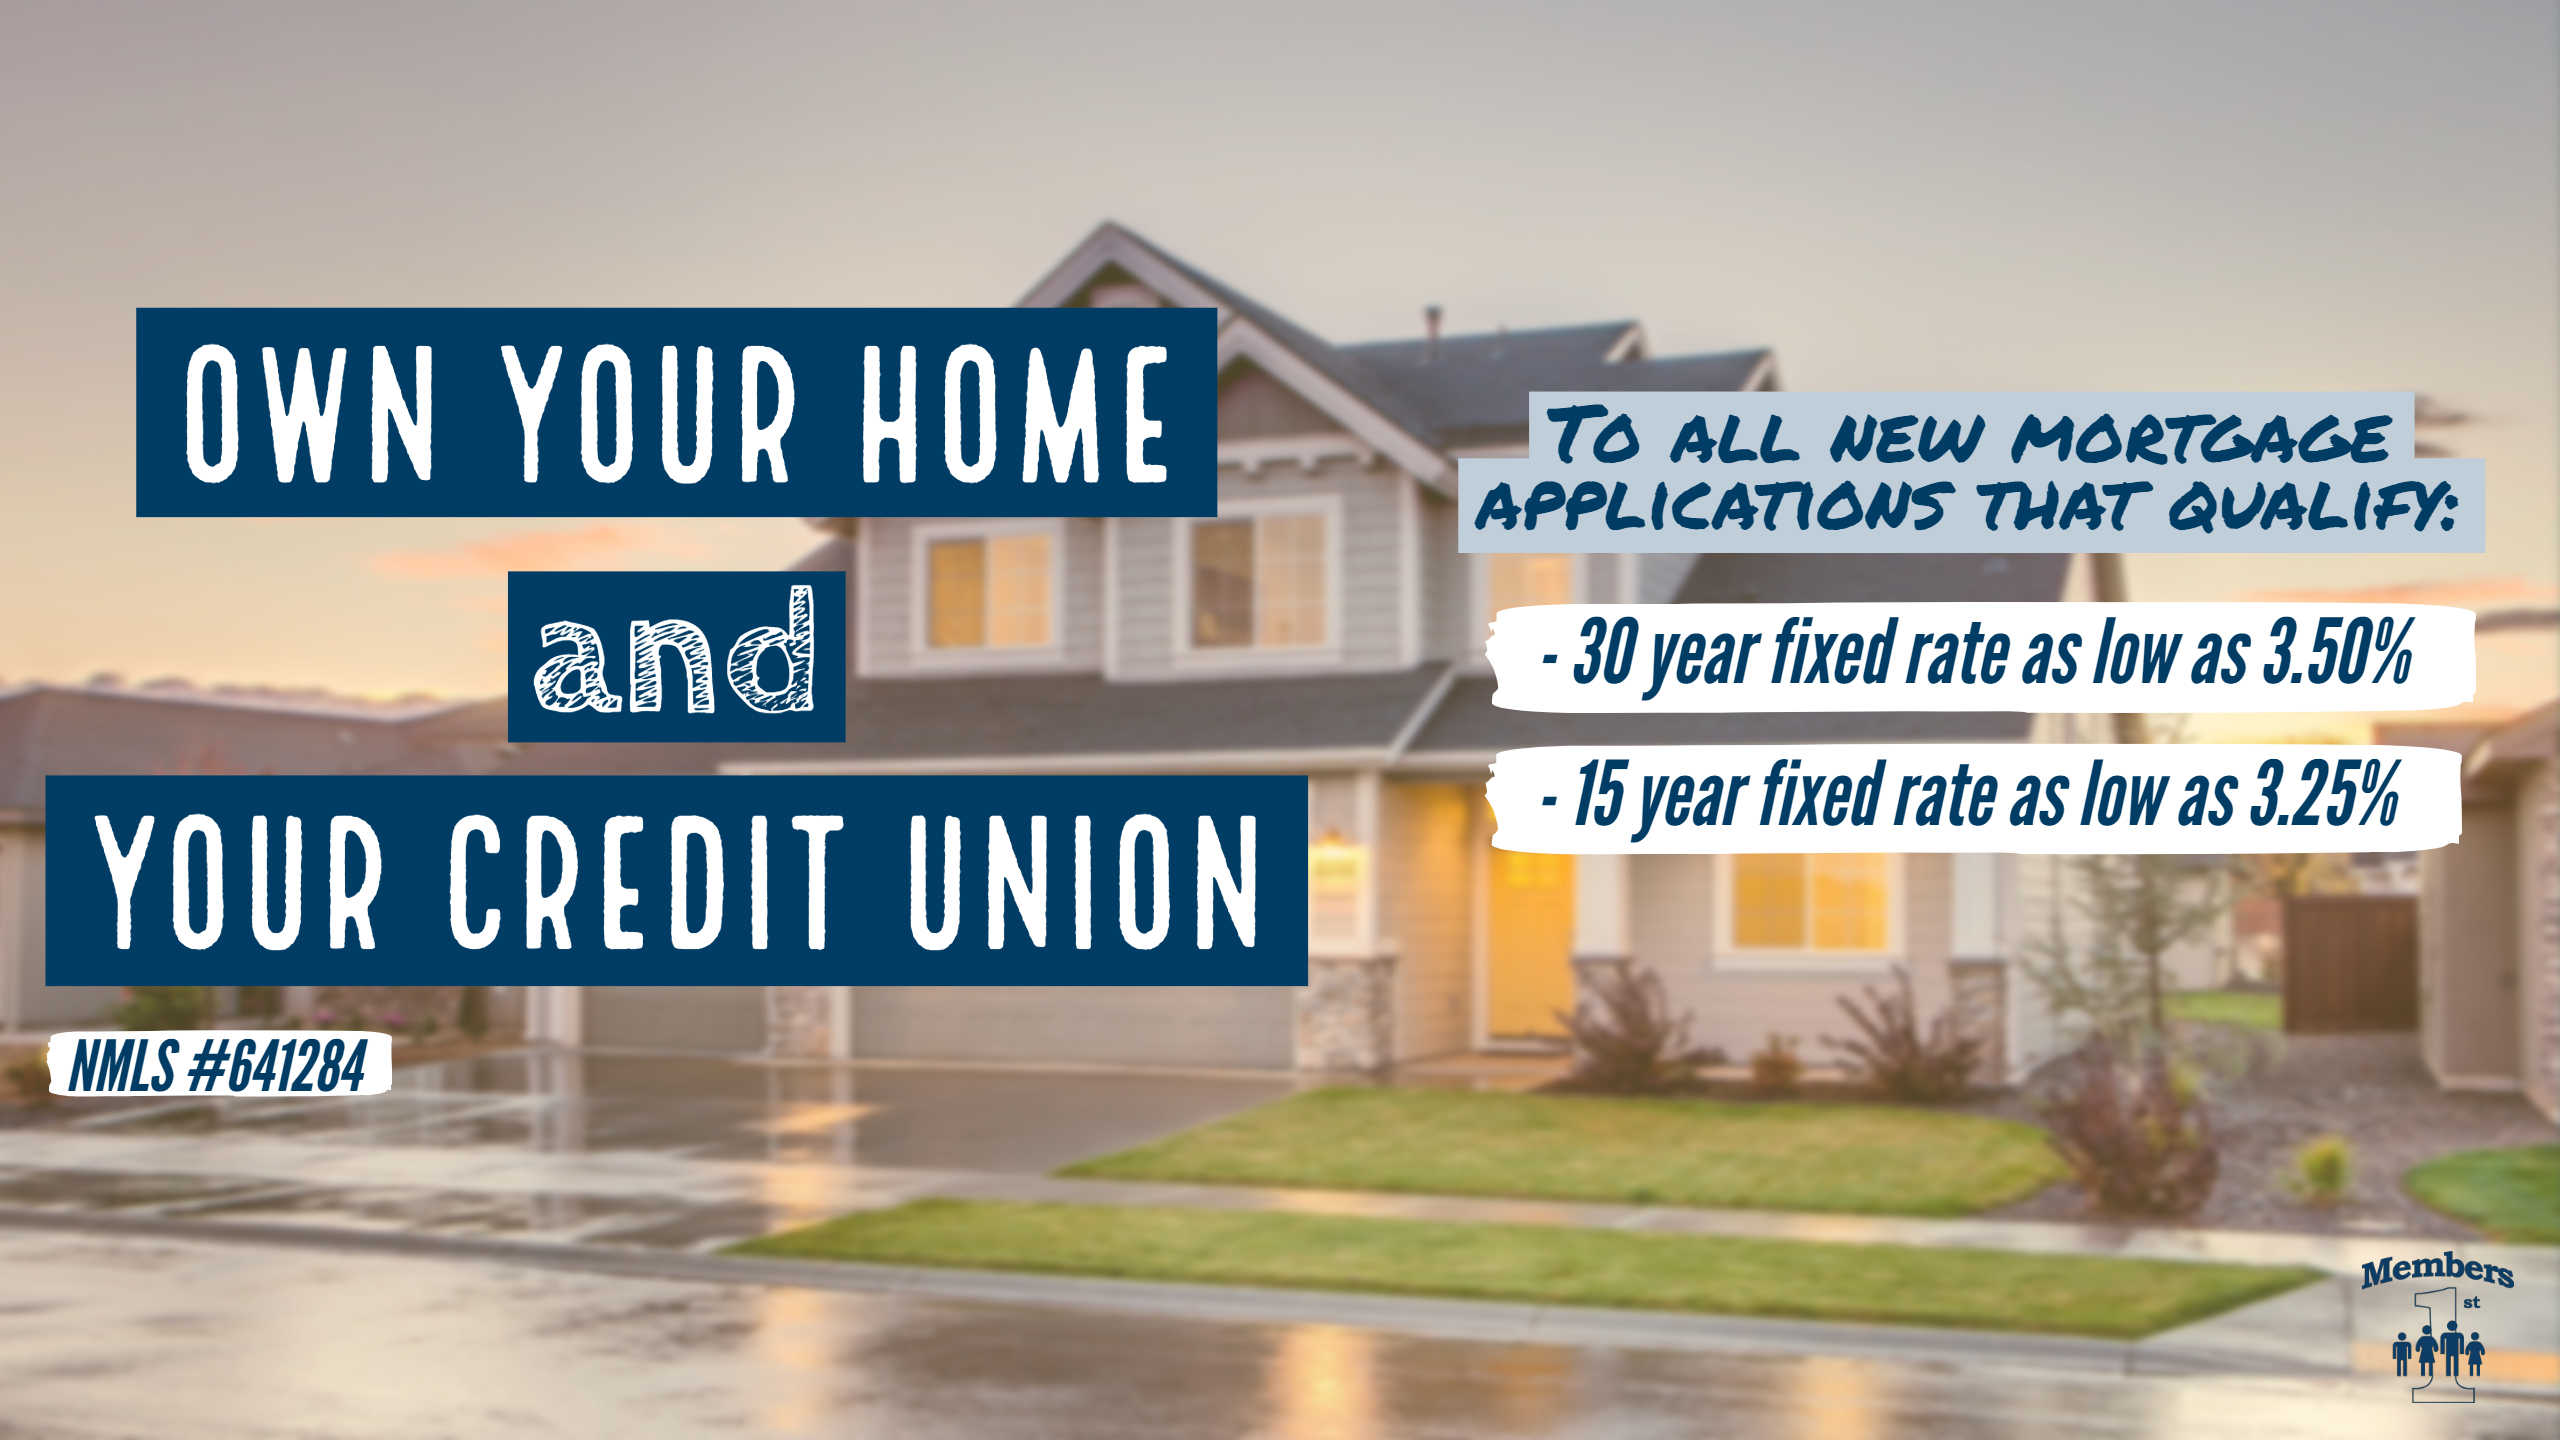 Own your Home and your Credit Union